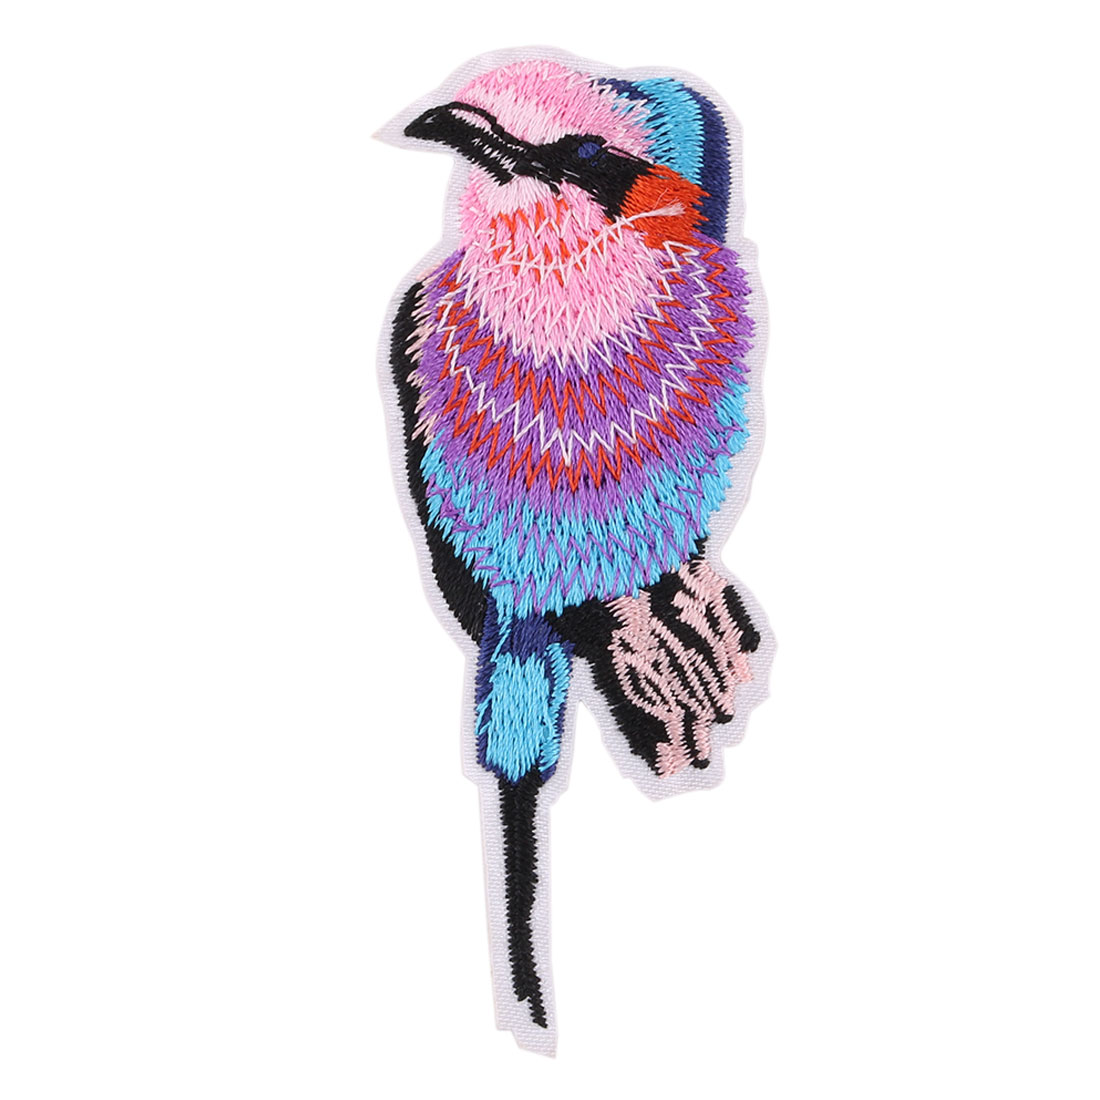 Unique Bargains Household Polyester Bird Pattern Embroidery Sewing Trimming Lace Applique